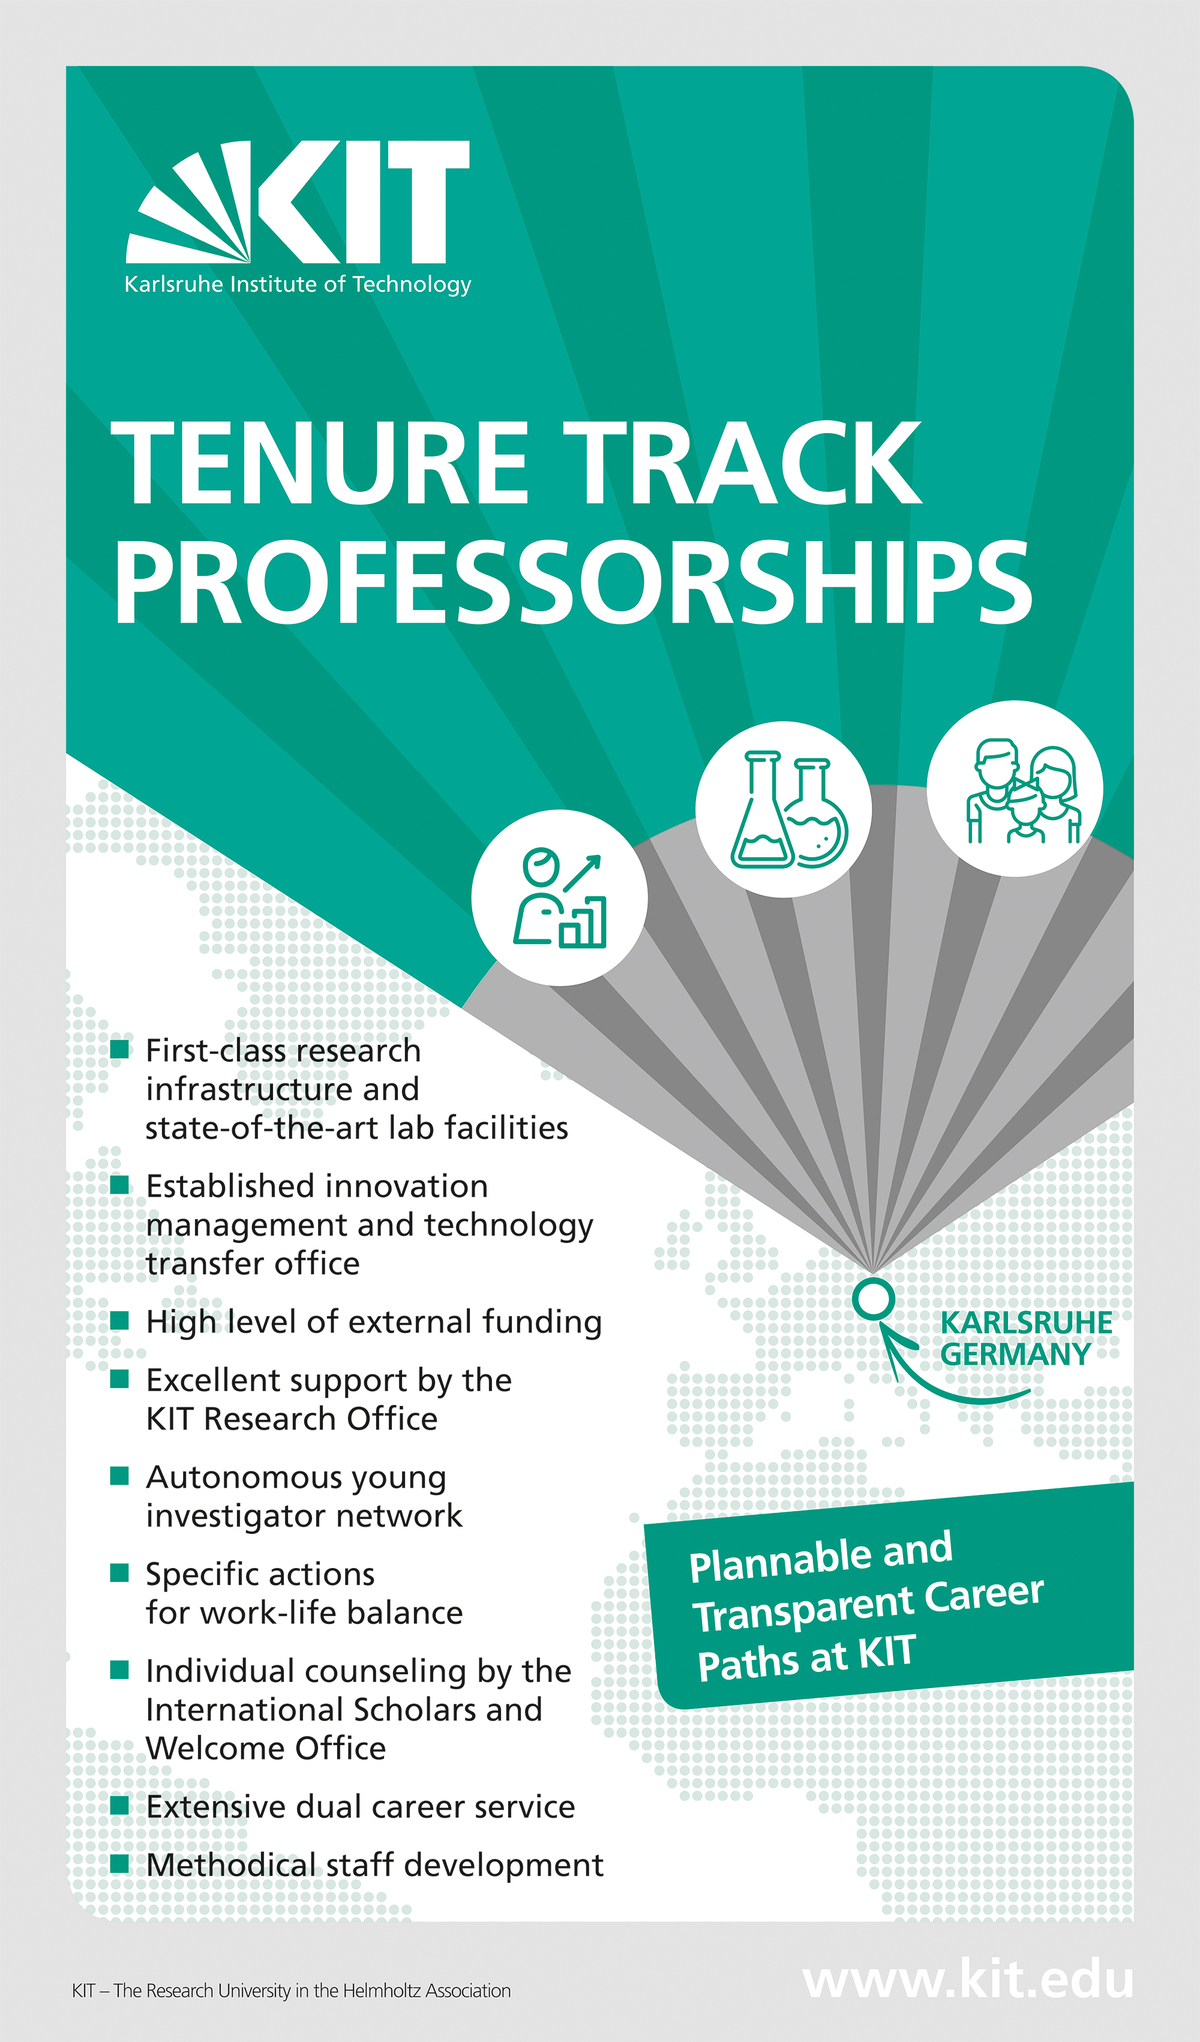 Advantages of a tenure track professorship at KIT